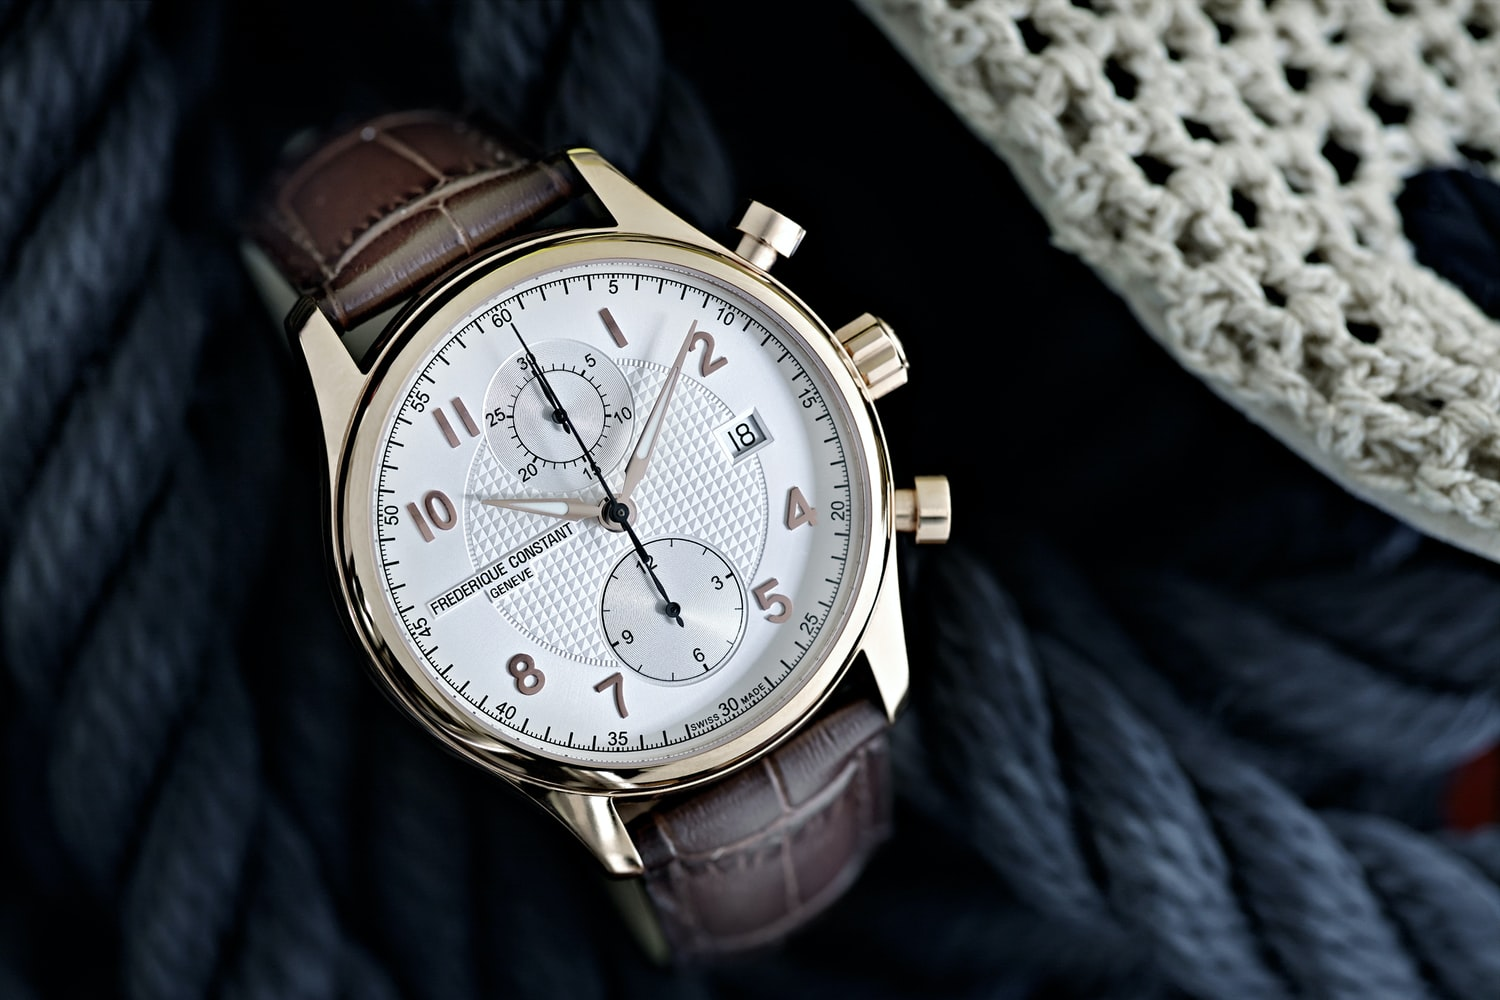 frederique constant bought by citizen Breaking News: Citizen To Acquire Frederique Constant Breaking News: Citizen To Acquire Frederique Constant fff